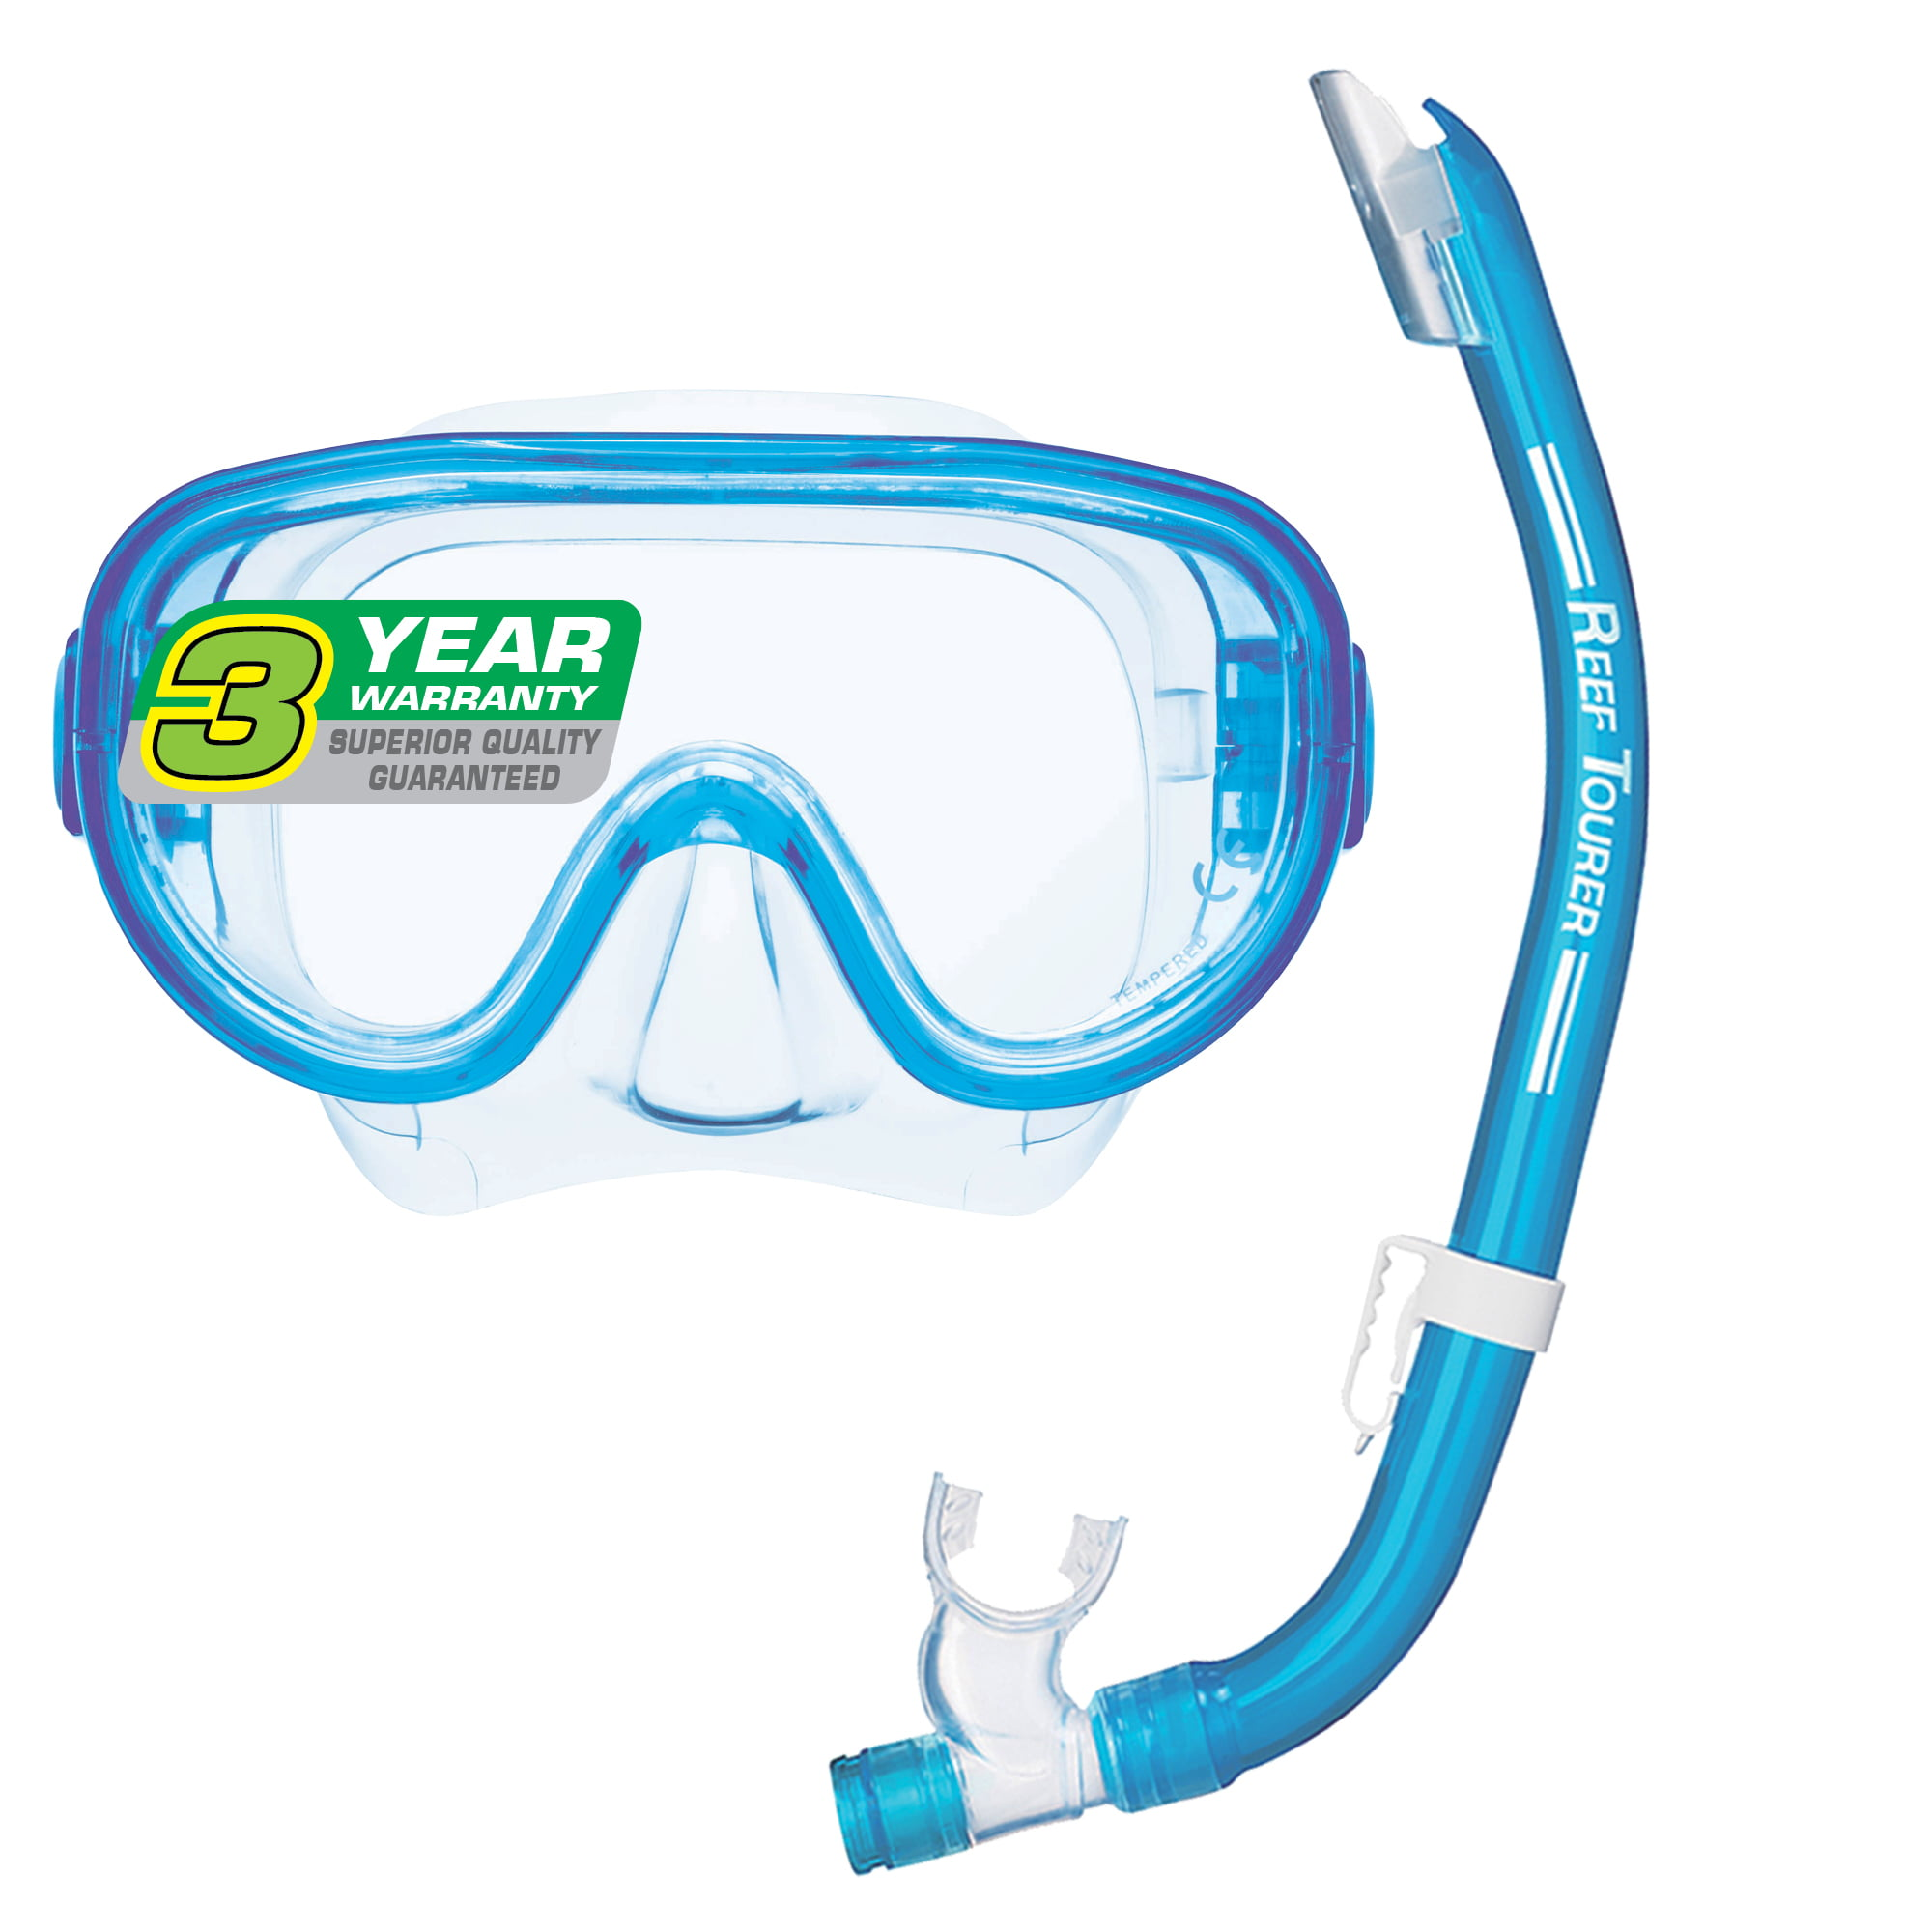 Reef Tourer Adult Single-Window Mask & Snorkel Combo Set by Tabata USA, Inc.